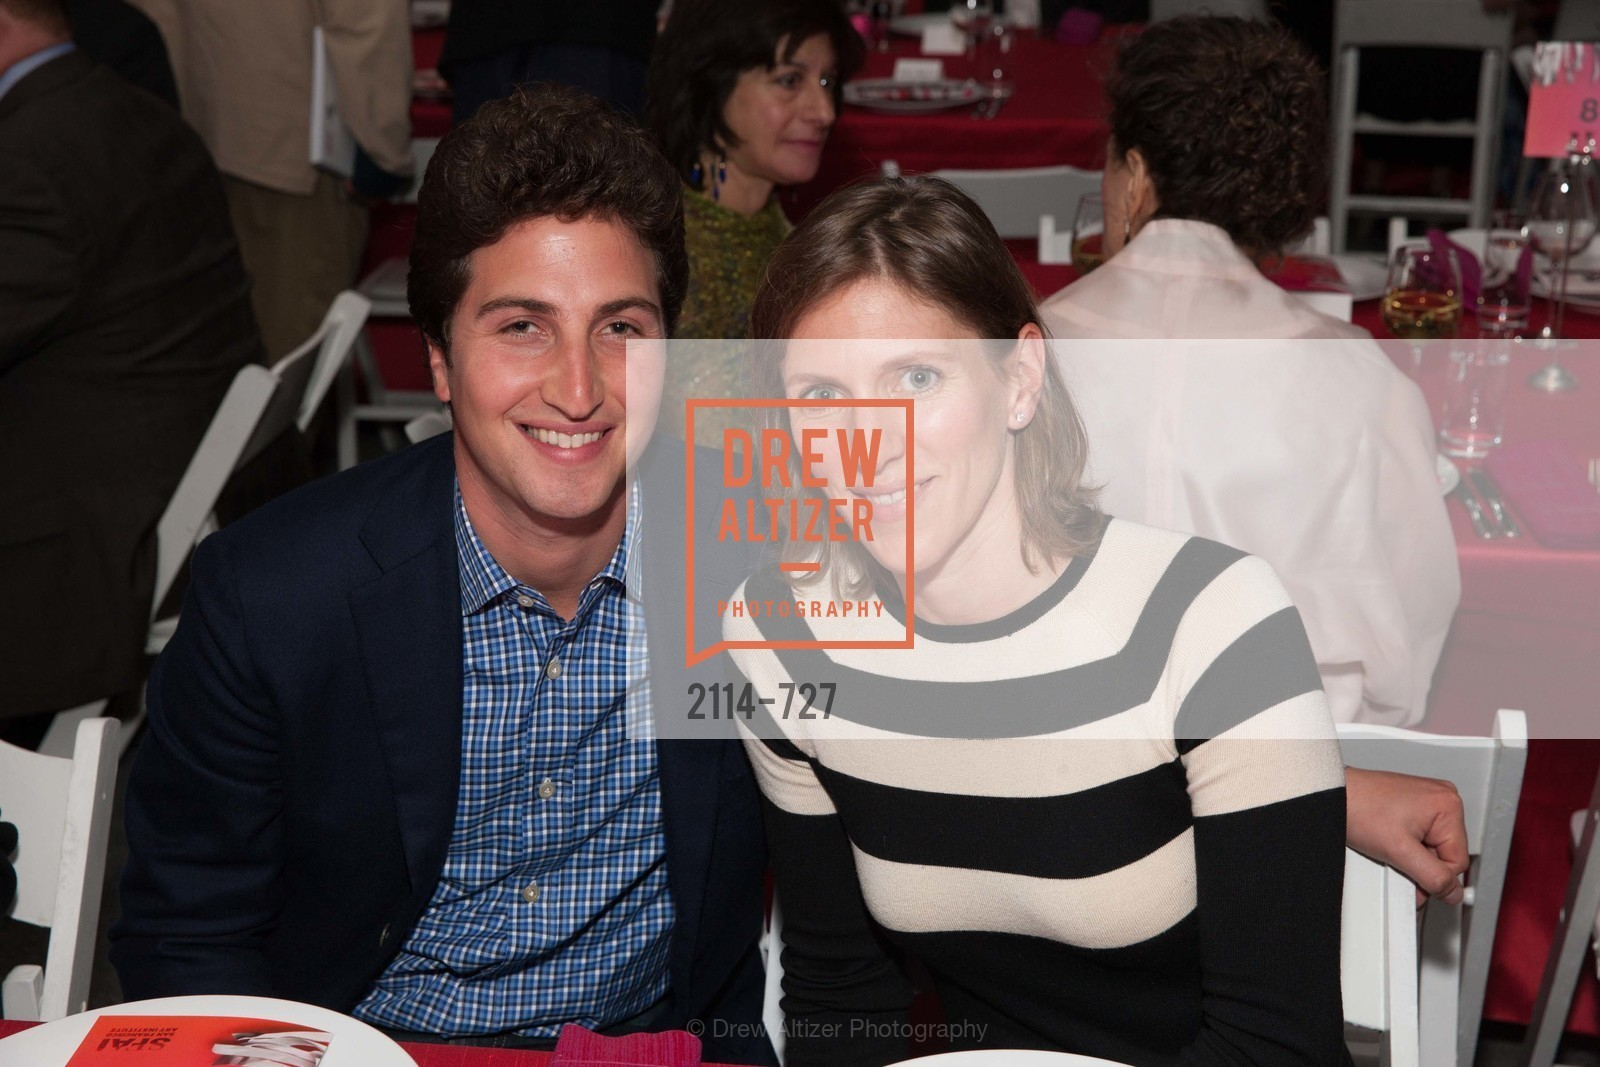 Matthew Goldman, Laura Haywood, SAN FRANCISCO ART INSTITUTE Gala Honoring Art Visionary and Advocate ROSELYNE CHROMAN SWIG, US, May 13th, 2015,Drew Altizer, Drew Altizer Photography, full-service agency, private events, San Francisco photographer, photographer california